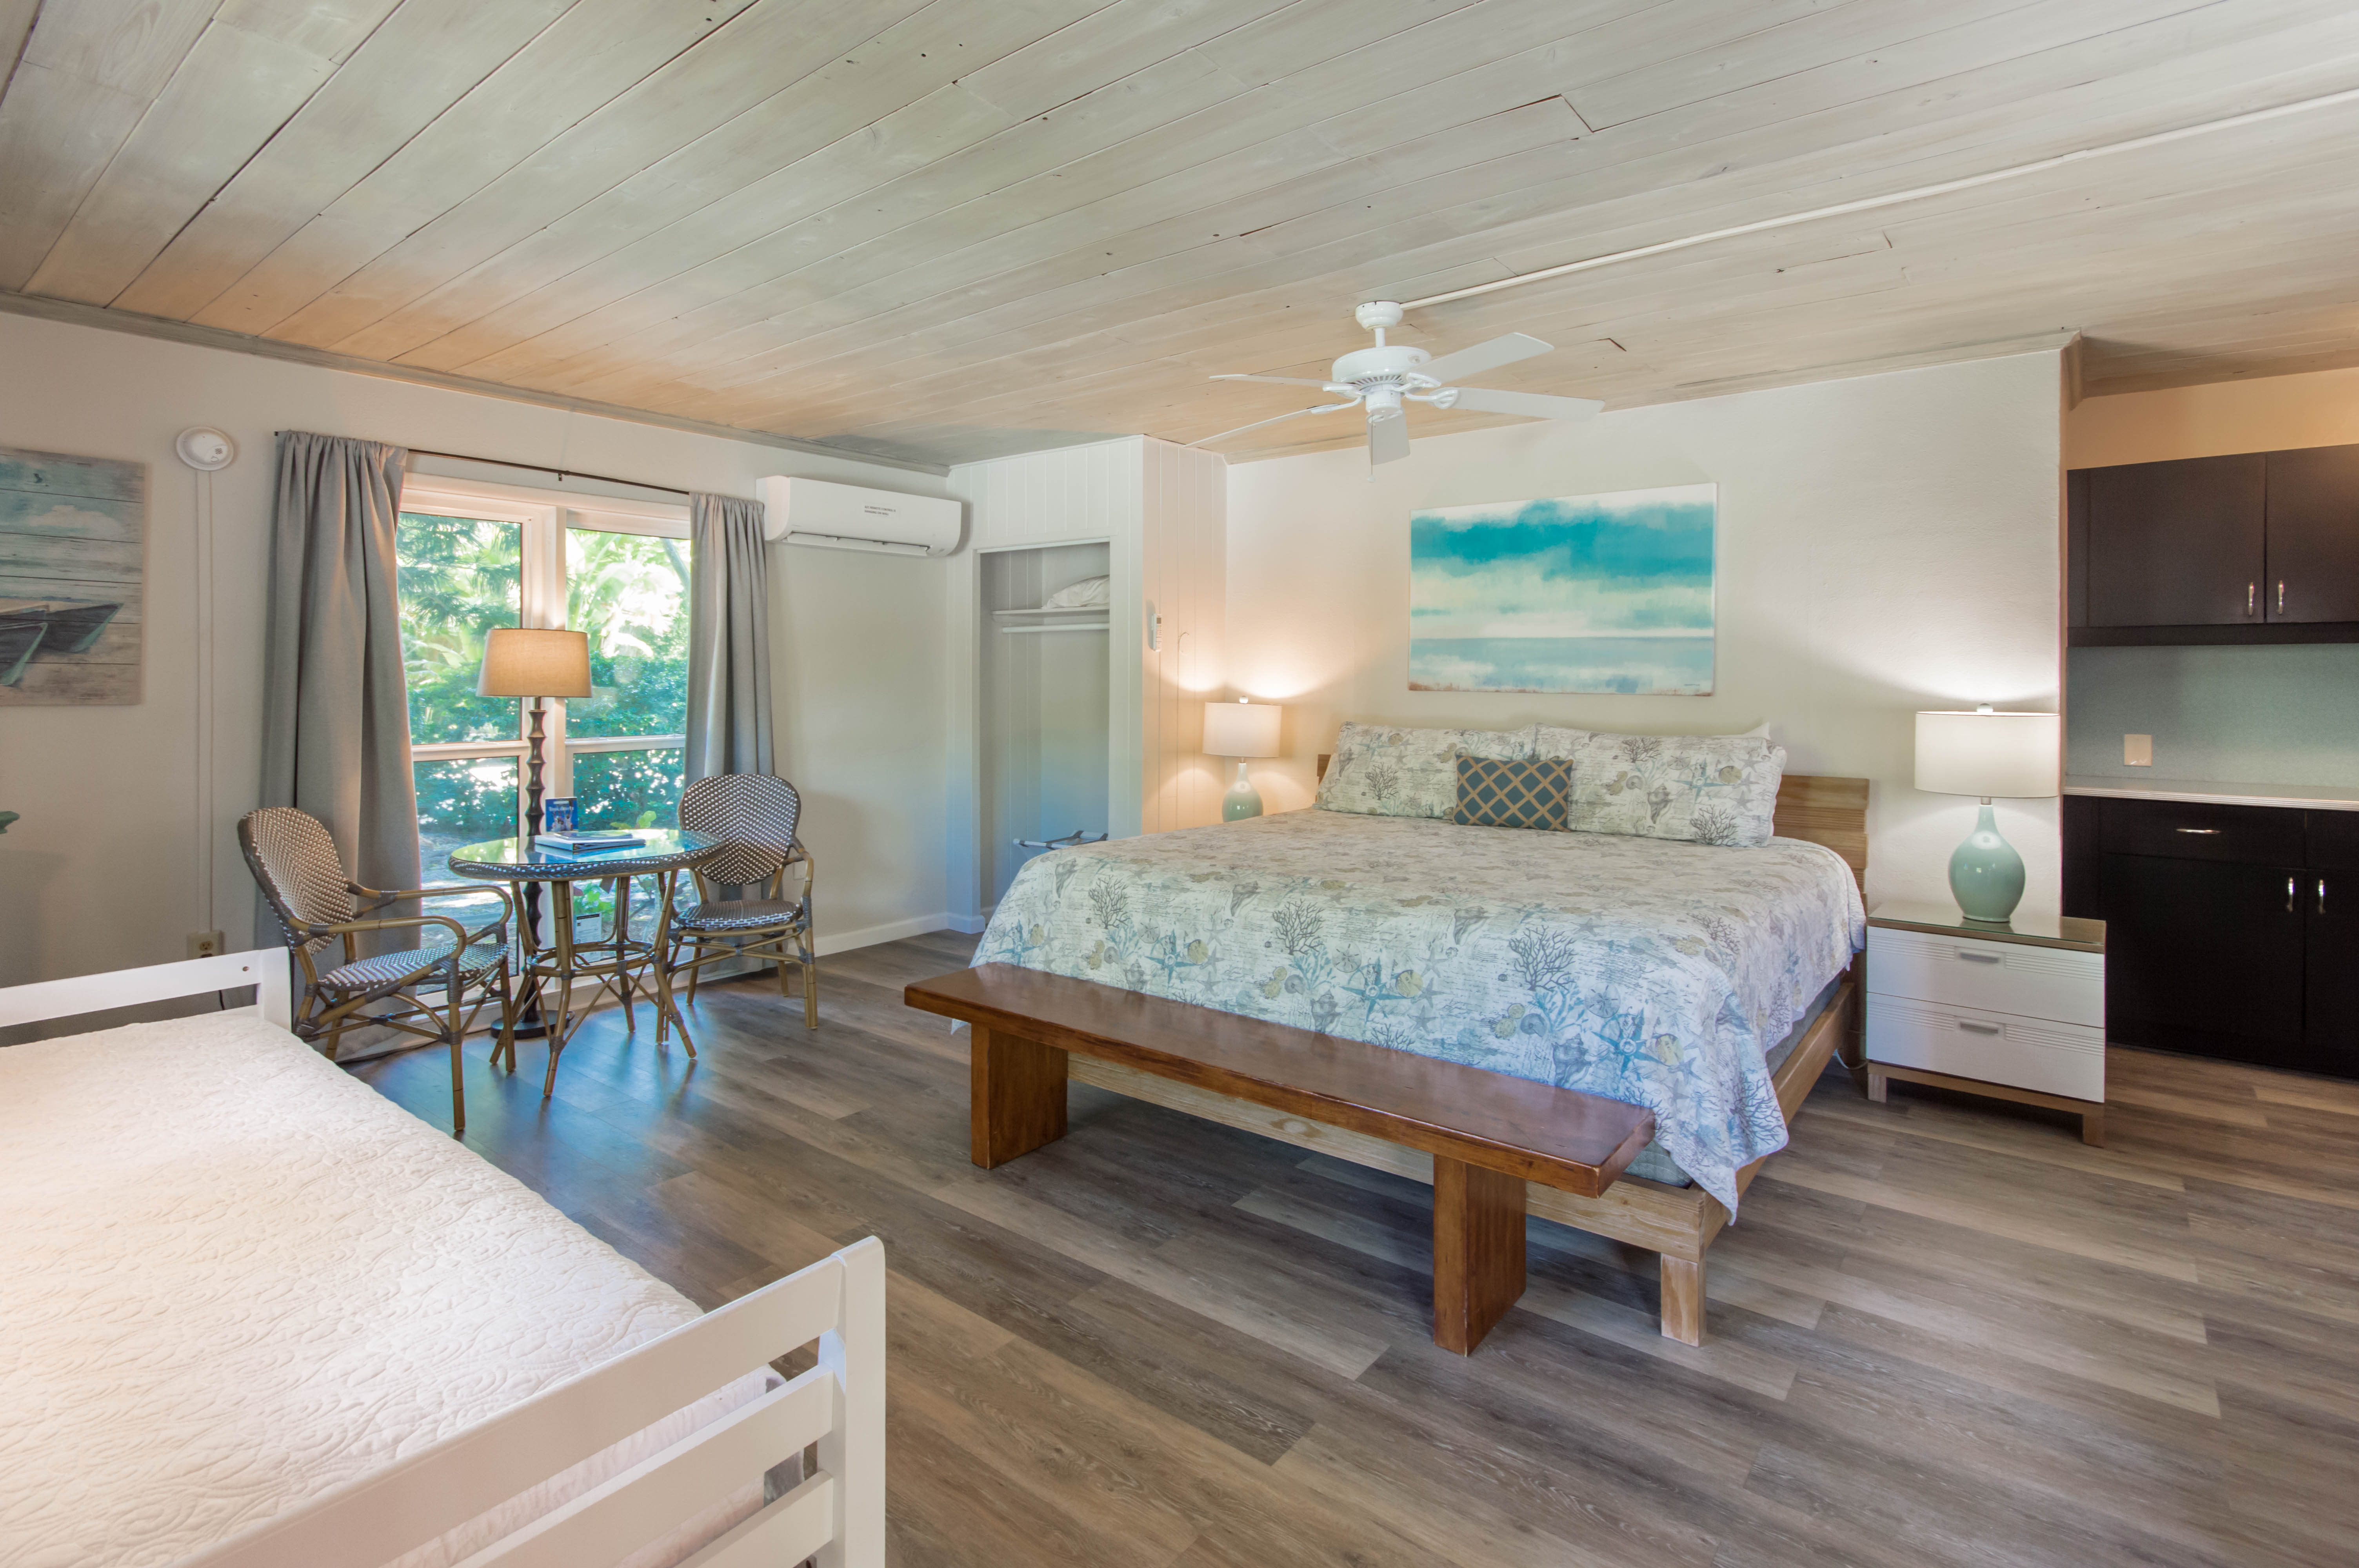 Parrot Nest Cottages, Sanibel